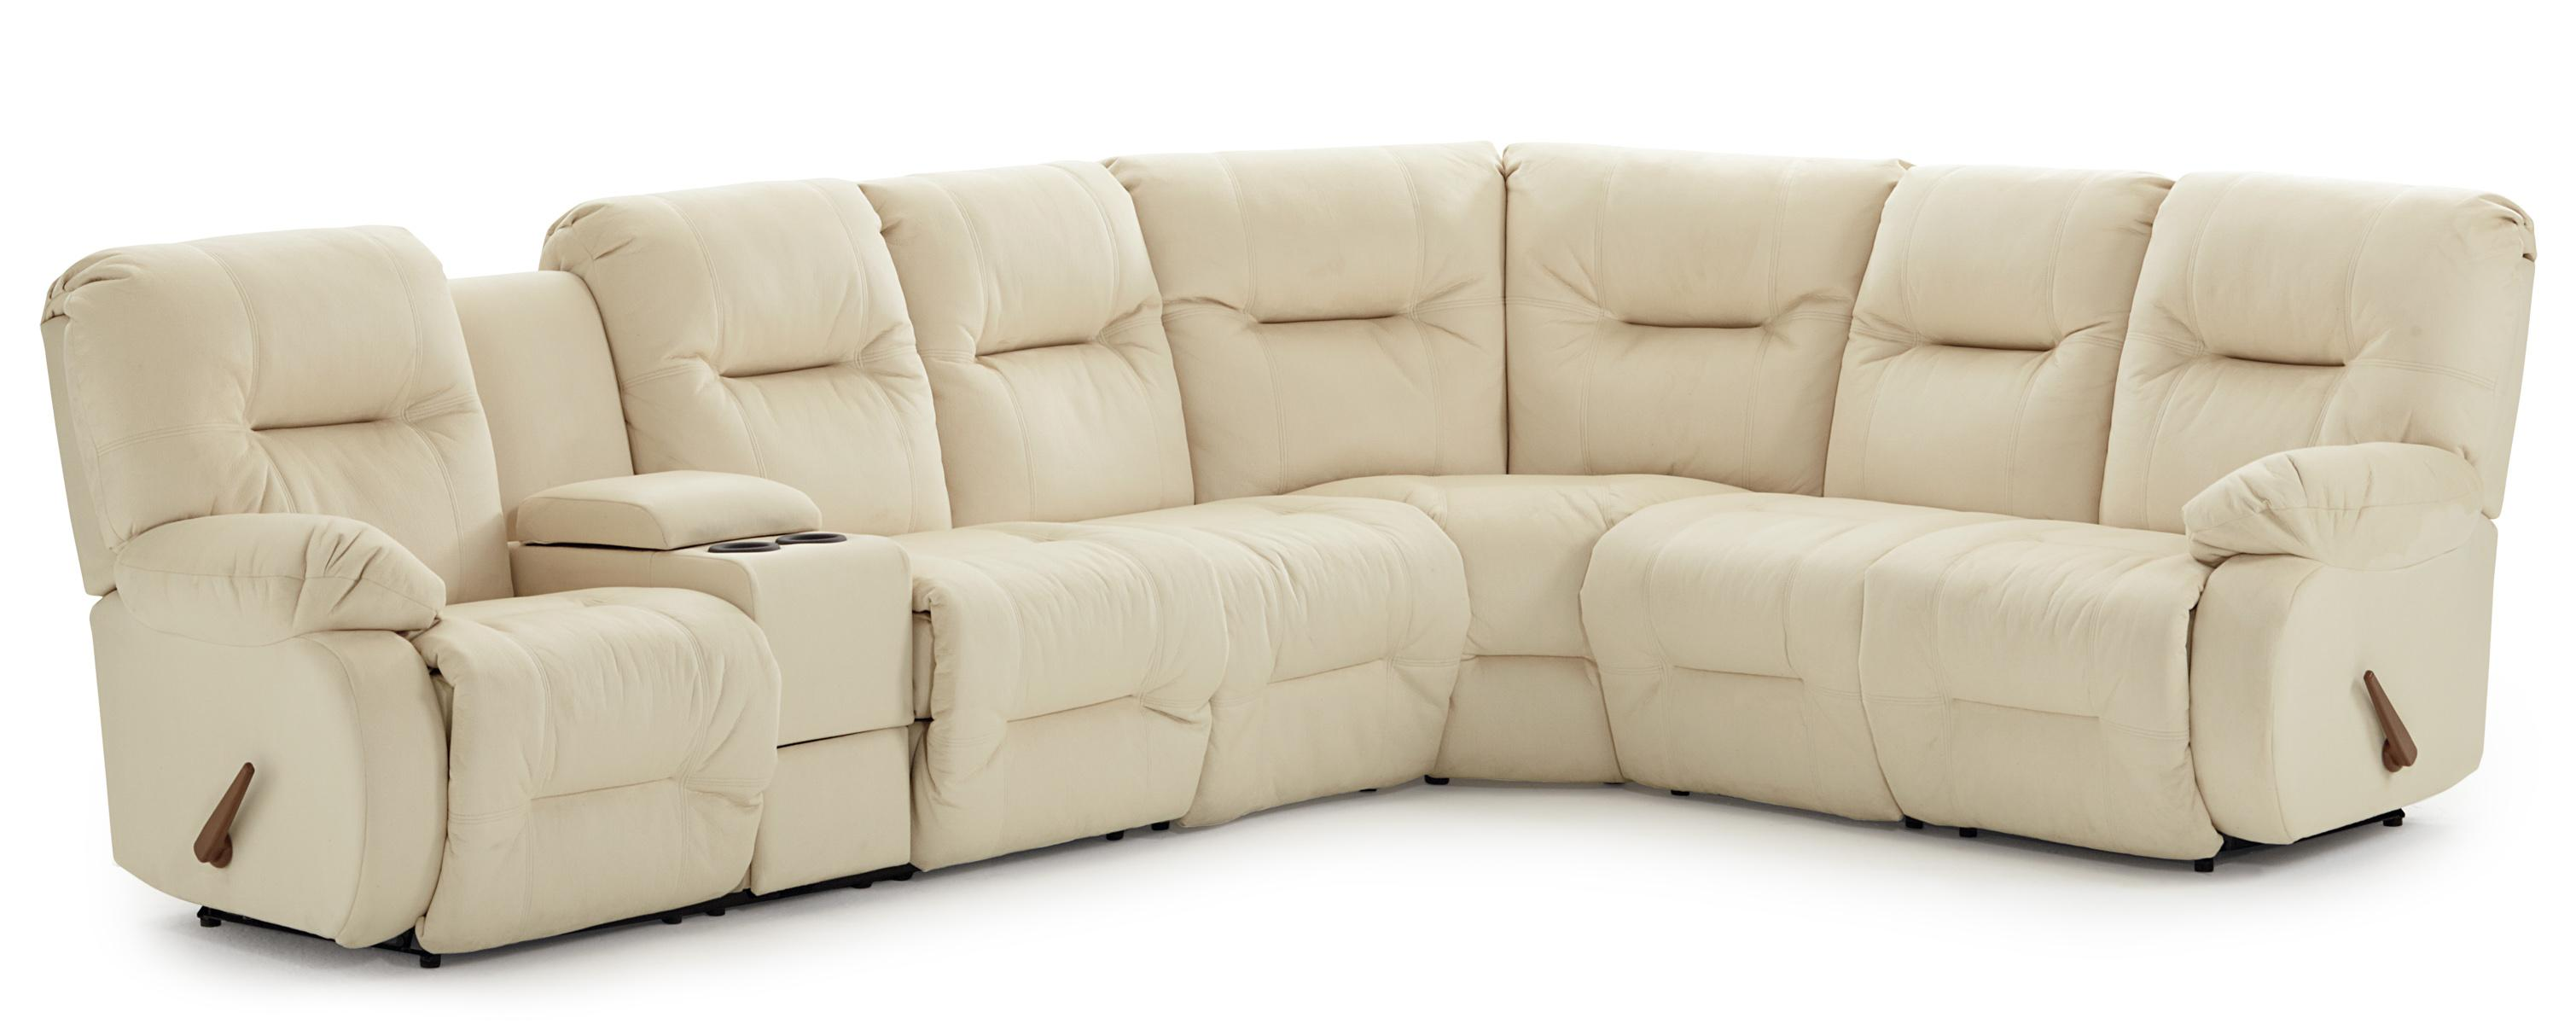 Casual Power Reclining Sectional Sofa with Storage Console and Cupholders  sc 1 st  Wolf Furniture : sectionals under 1000 - Sectionals, Sofas & Couches